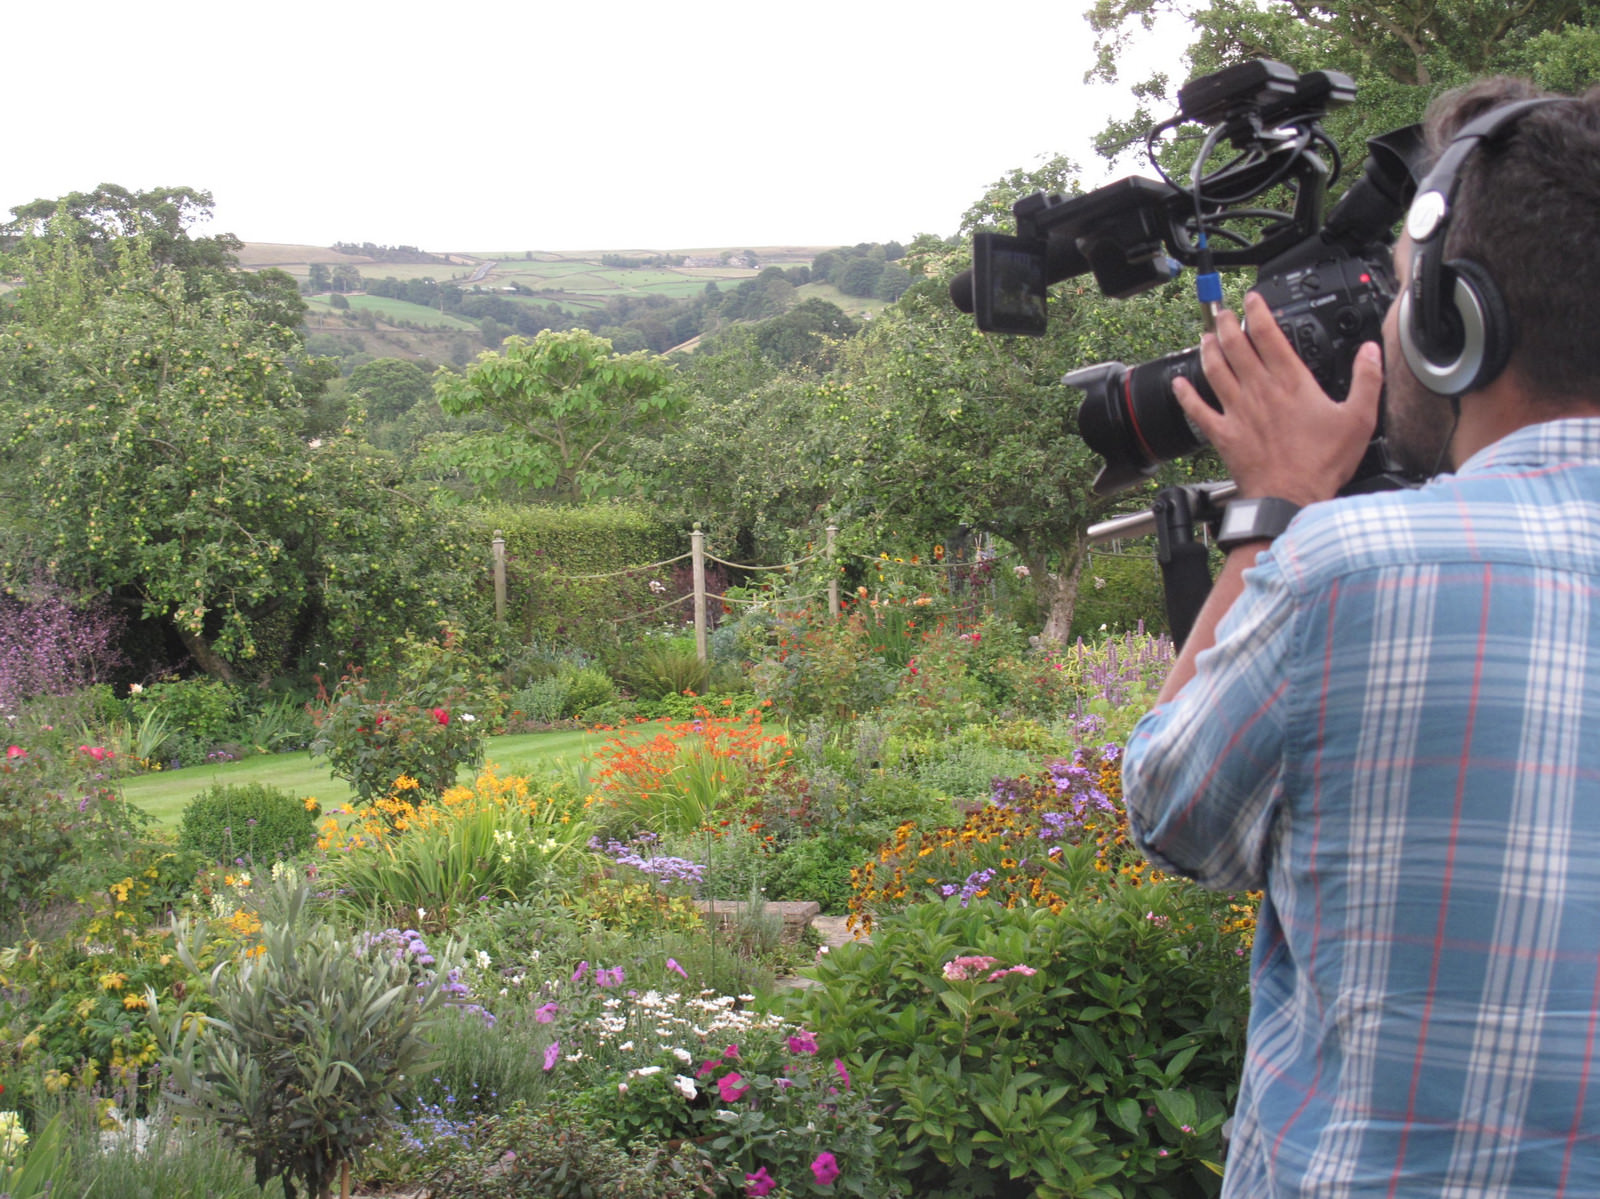 TV cameraman filming garden